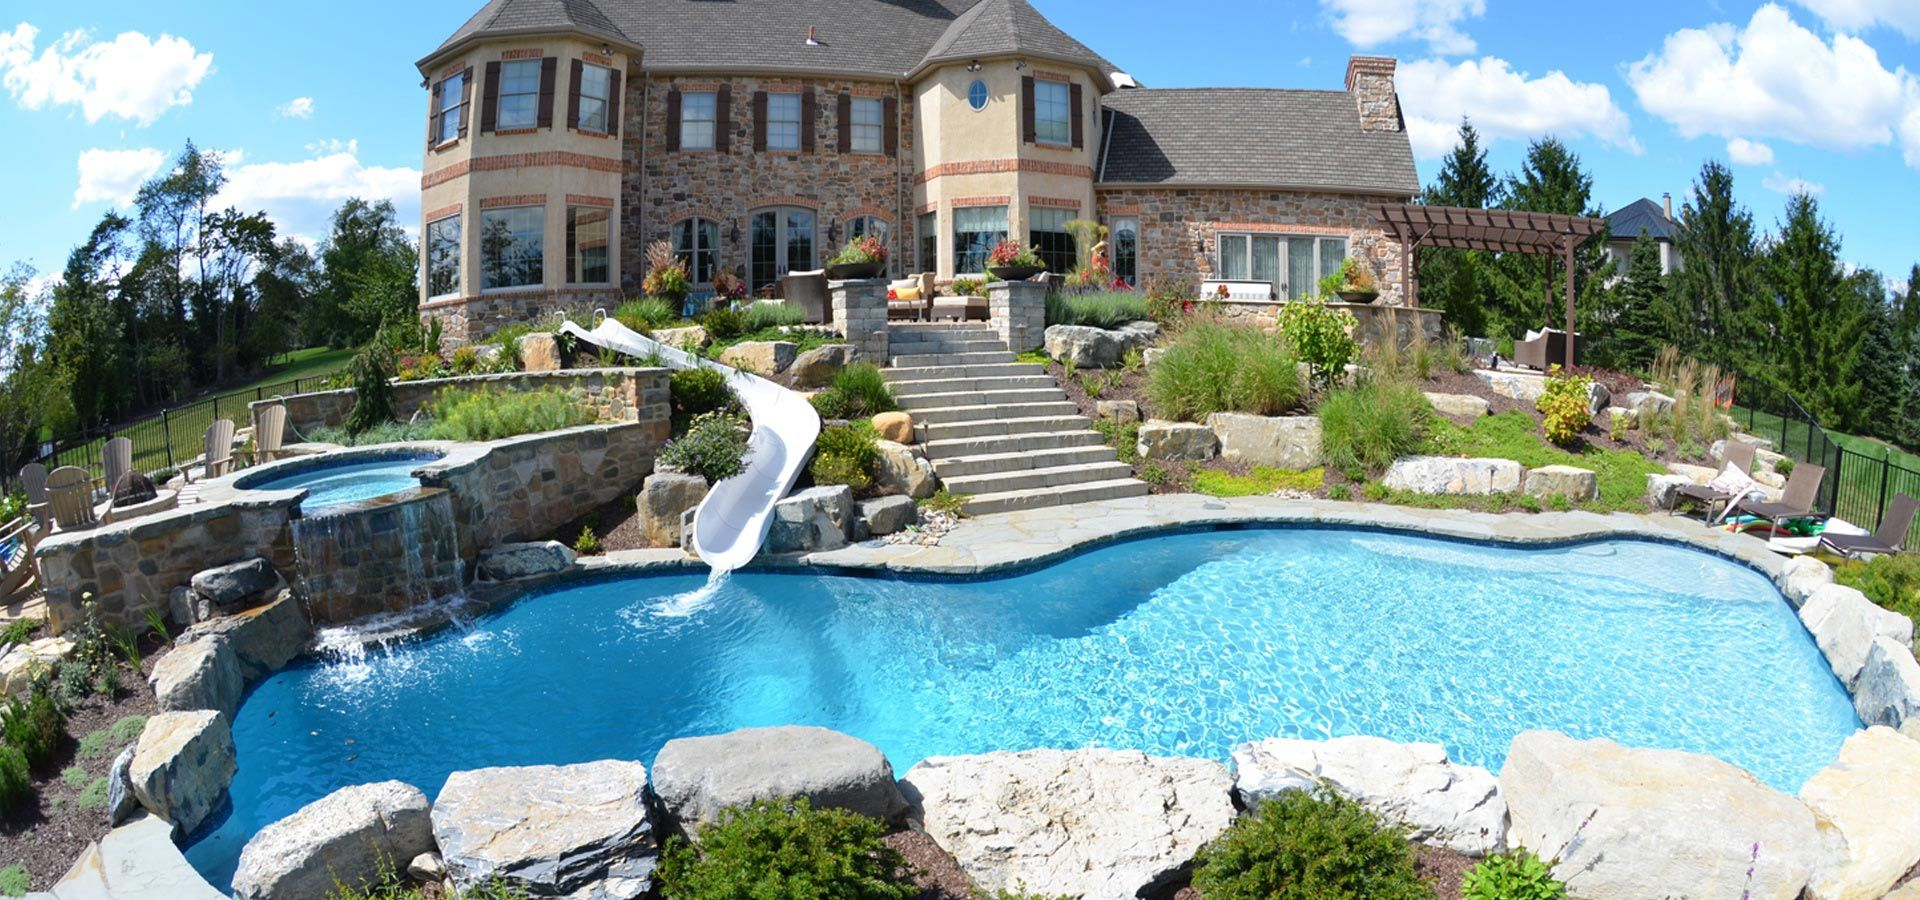 Custom pool with waterslide spa diamond brite finish for Pool exterior design